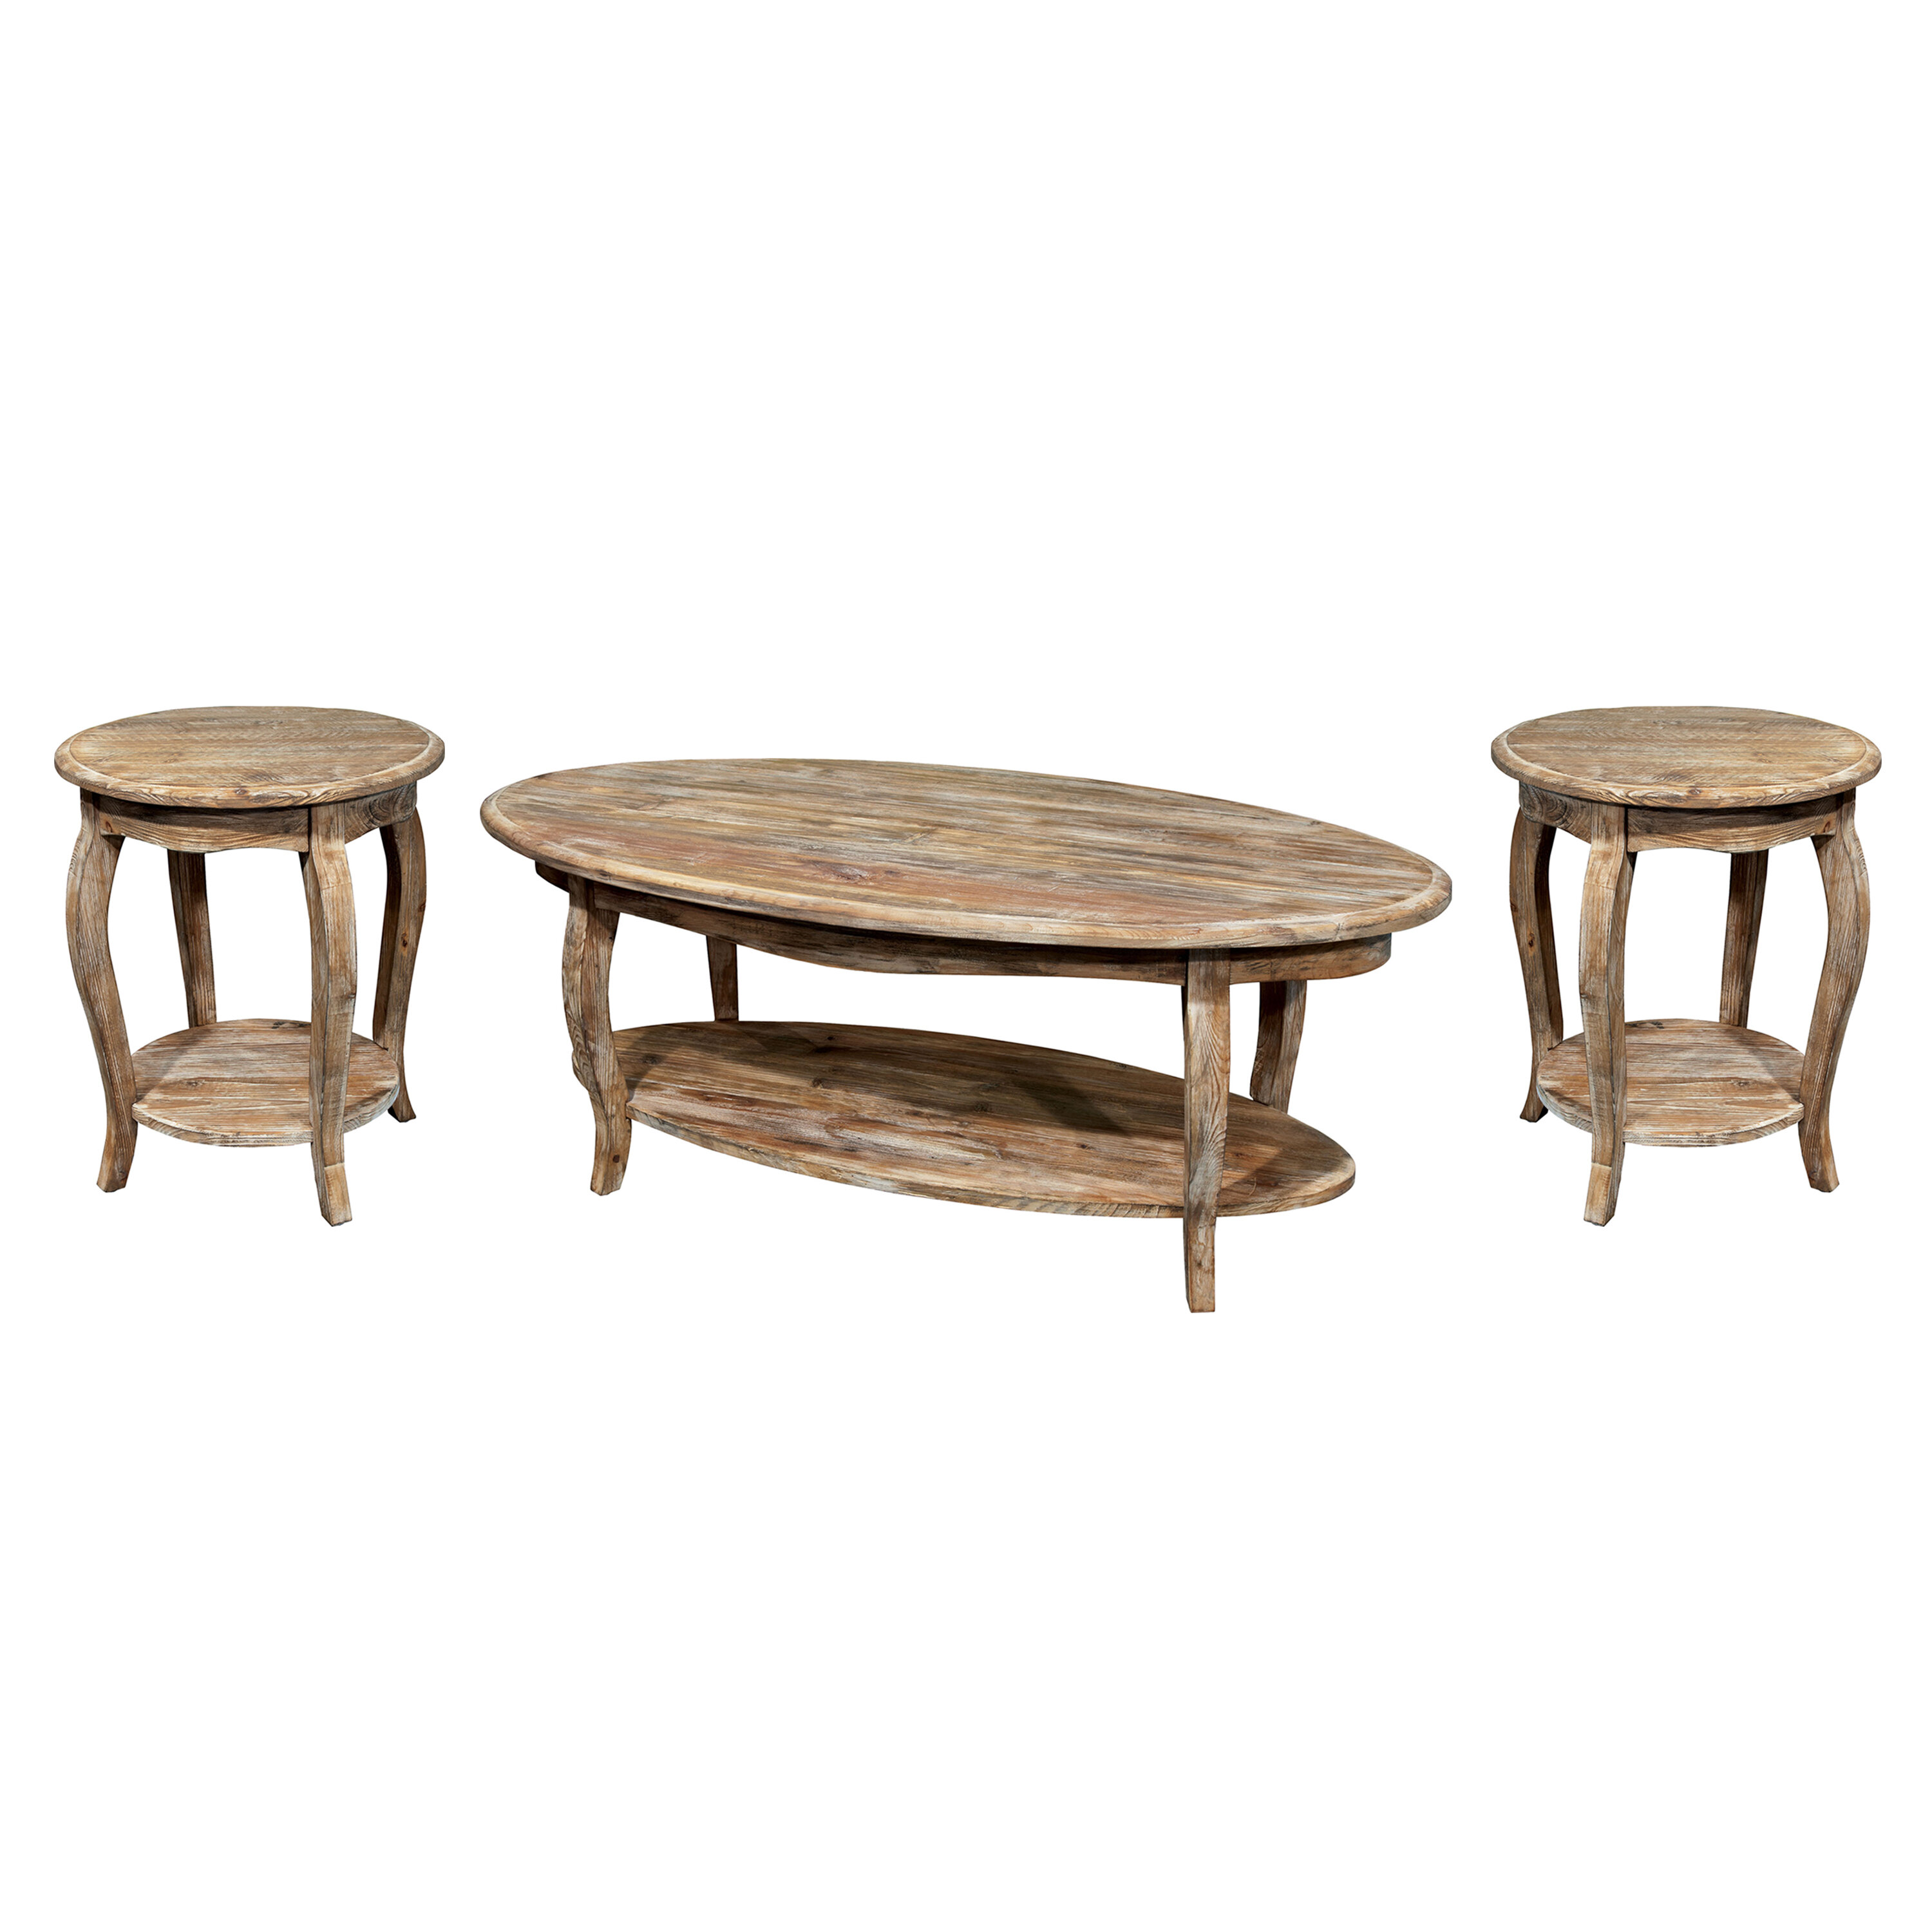 Coffee Table 3 Piece Sets.Francoise 3 Piece Coffee Table Set